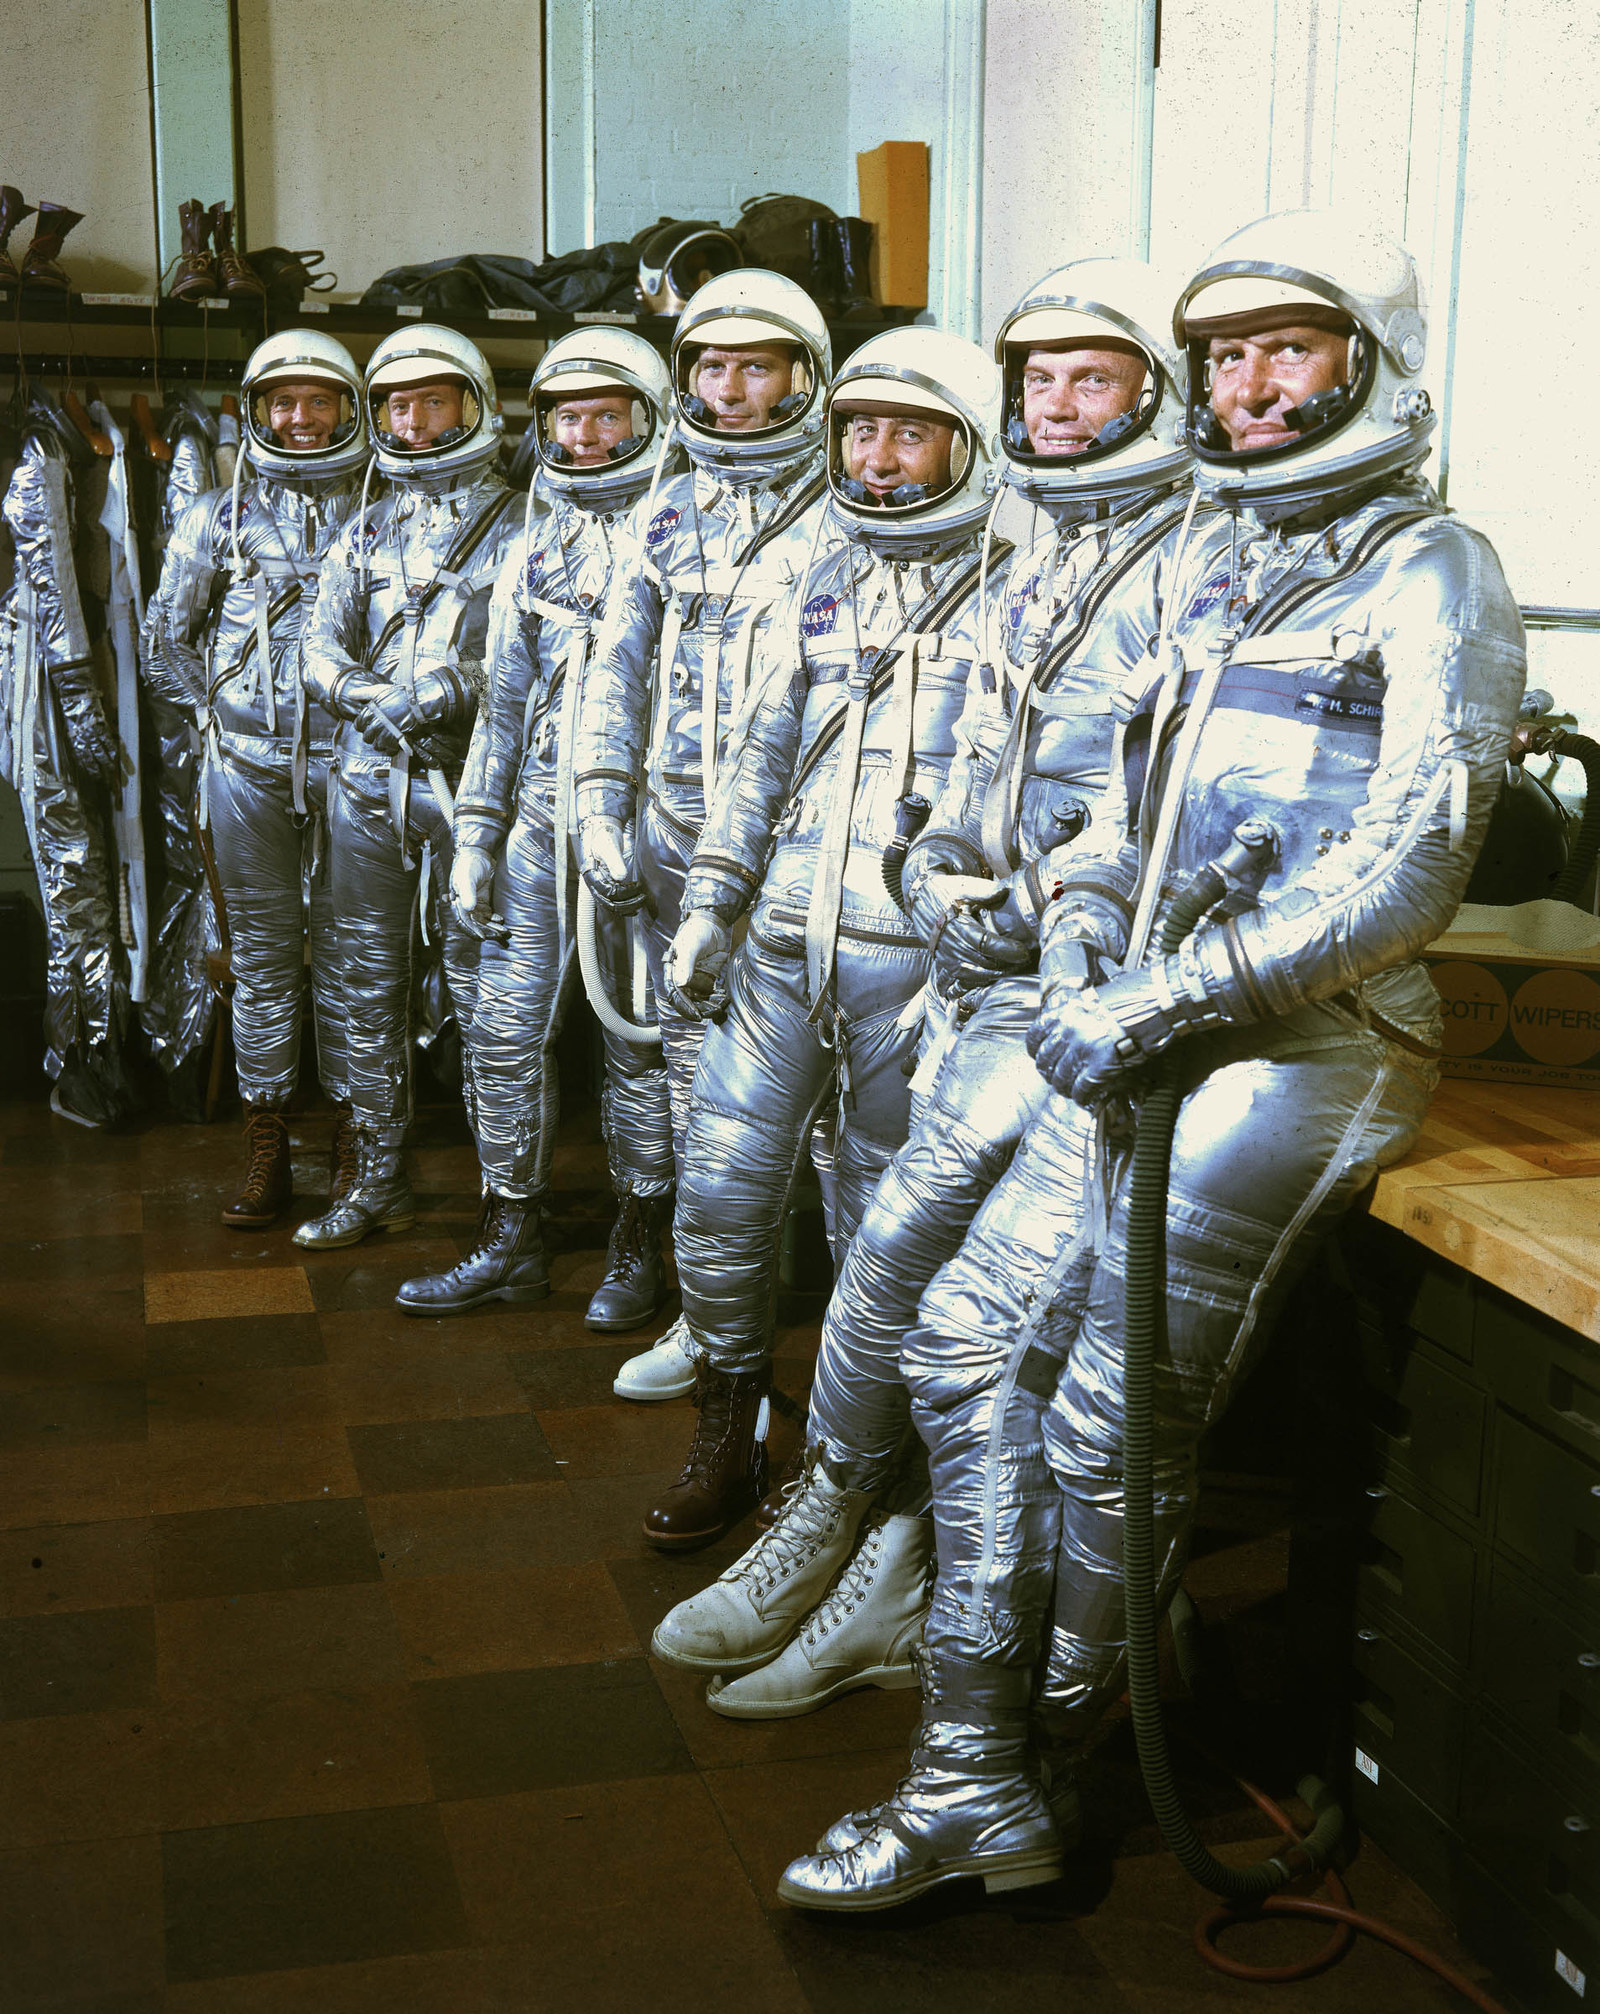 1960 Portrait of the initial seven Project Mercury astronauts as they pose in pressure suits at Langley Air Force Base, Virginia, March 17, 1960. Pictured are (from left) US astronauts Walter M. Schirra, John Glenn, Virgil I. Grissom, Donald K. Slayton, Gordon Cooper, Scott Carpenter, and Alan B. Shepard.